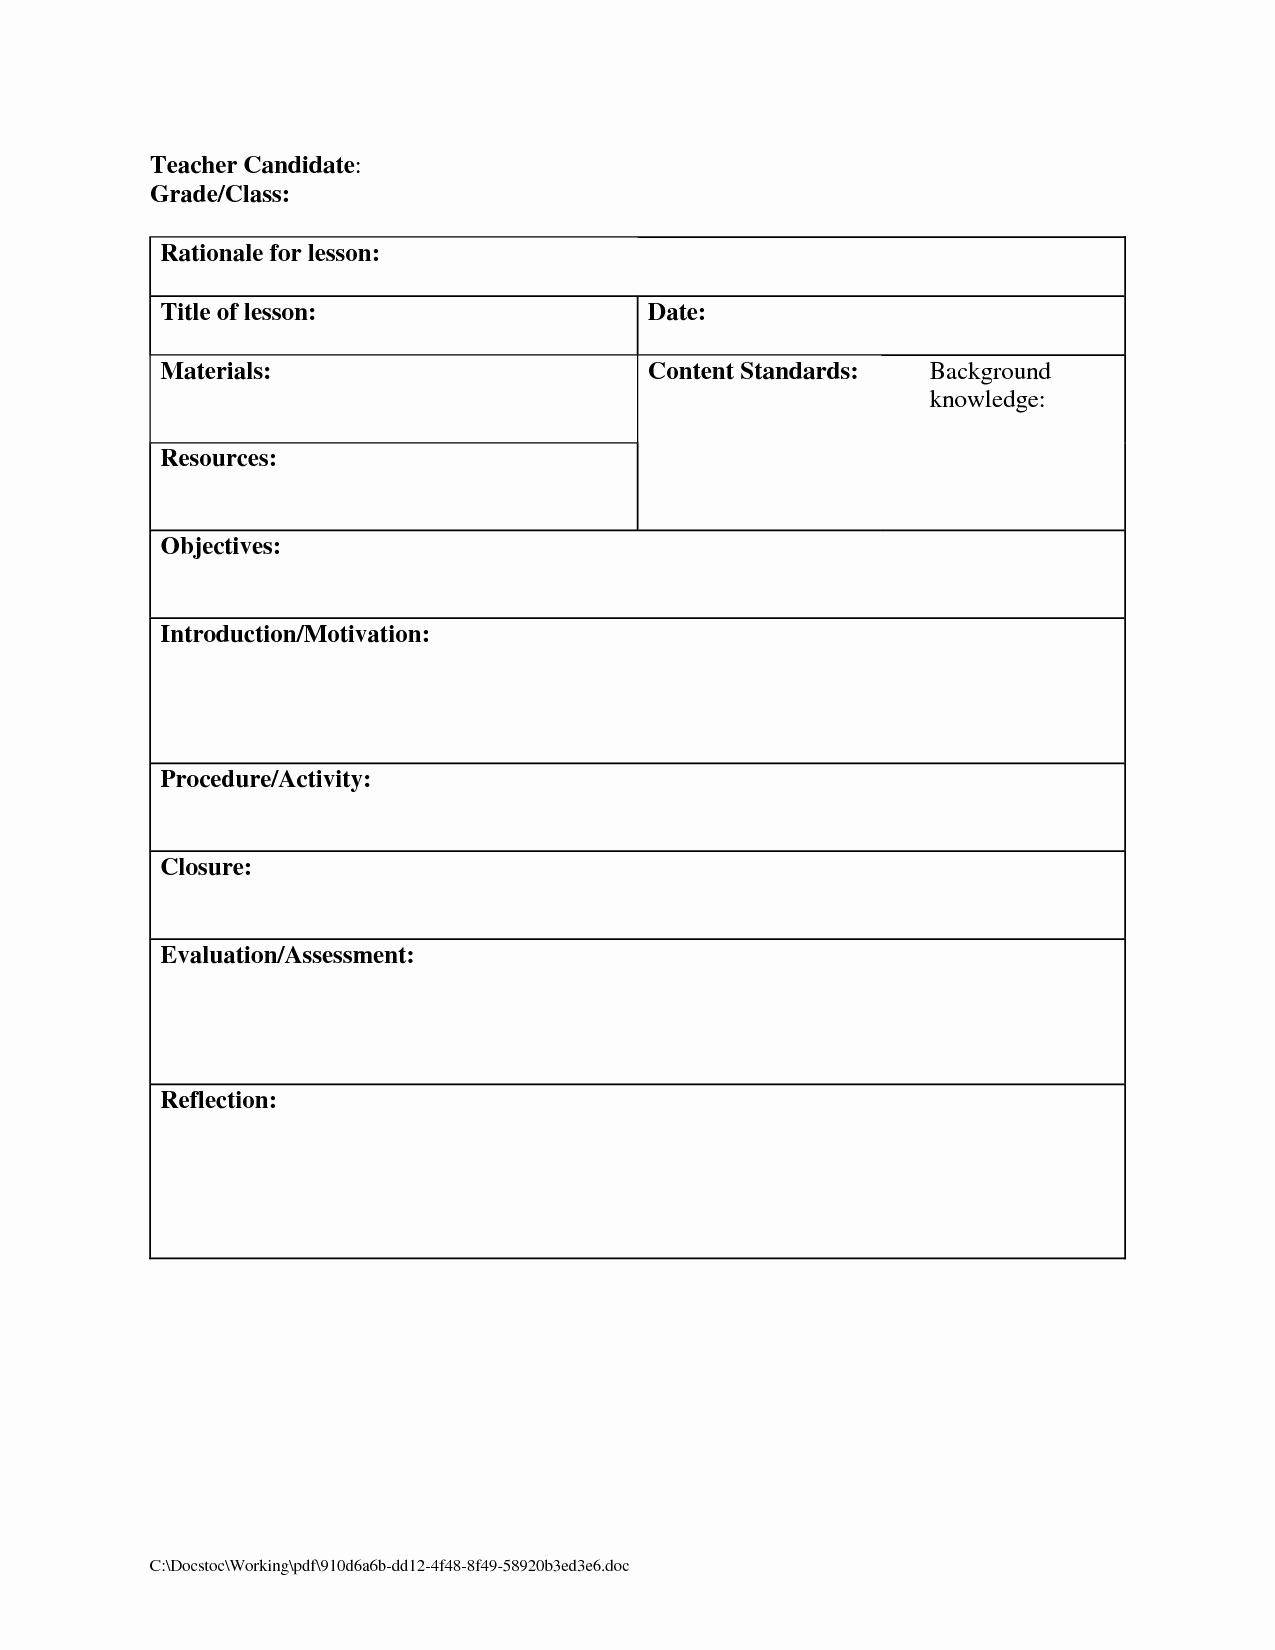 Blank Lesson Plan Template Free Unique Printable Blank Lesson Plans form for Counselors